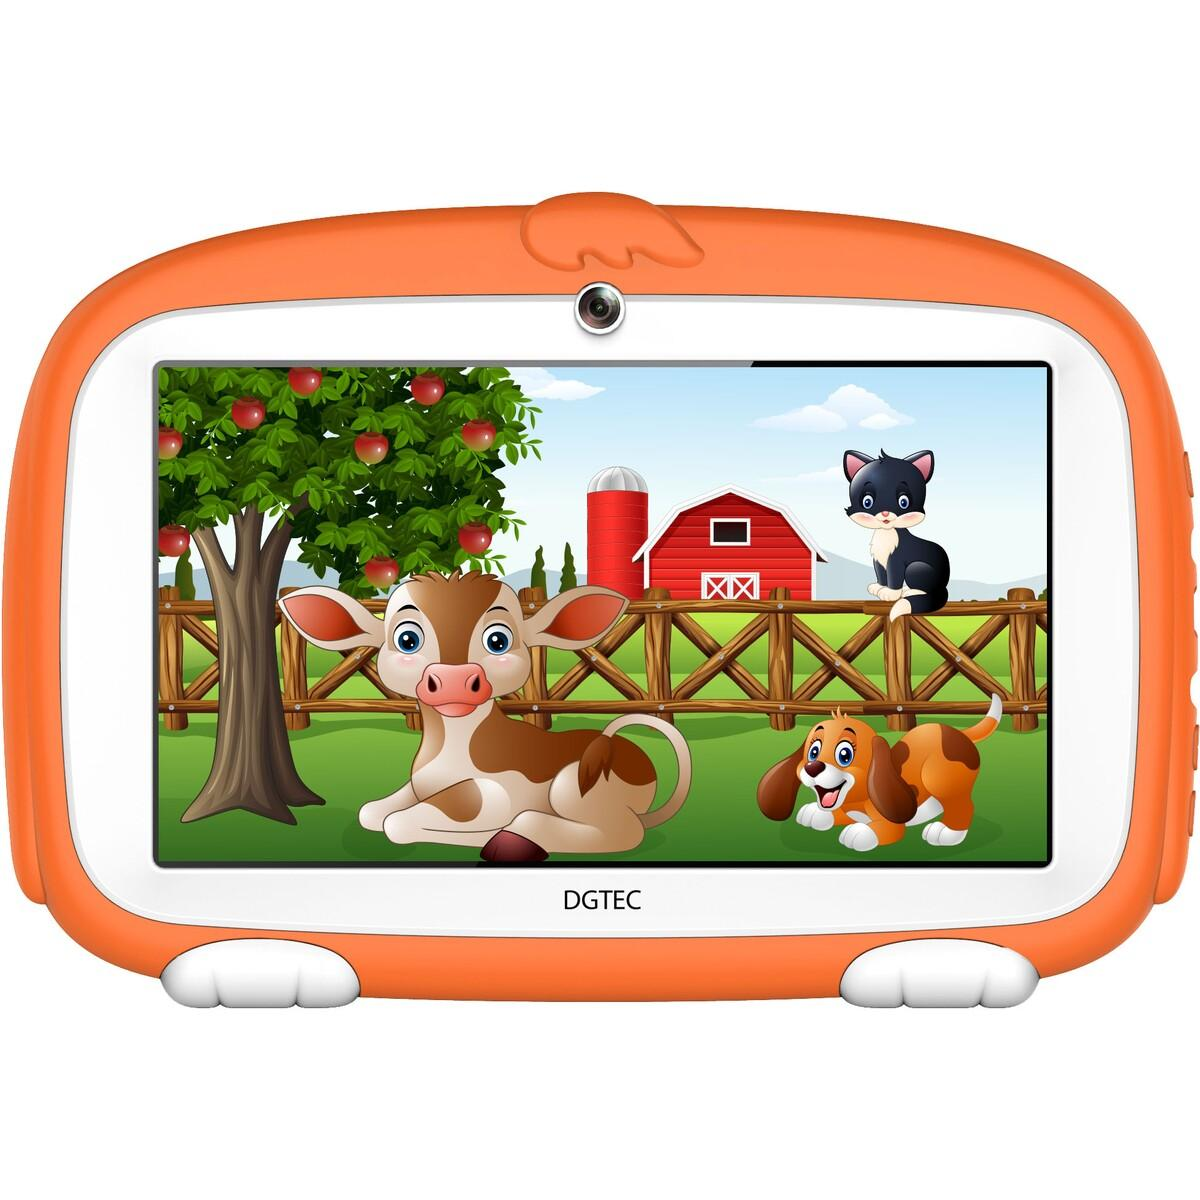 DGTEC 7 inch Tablet Puppy with IPS Colour Display